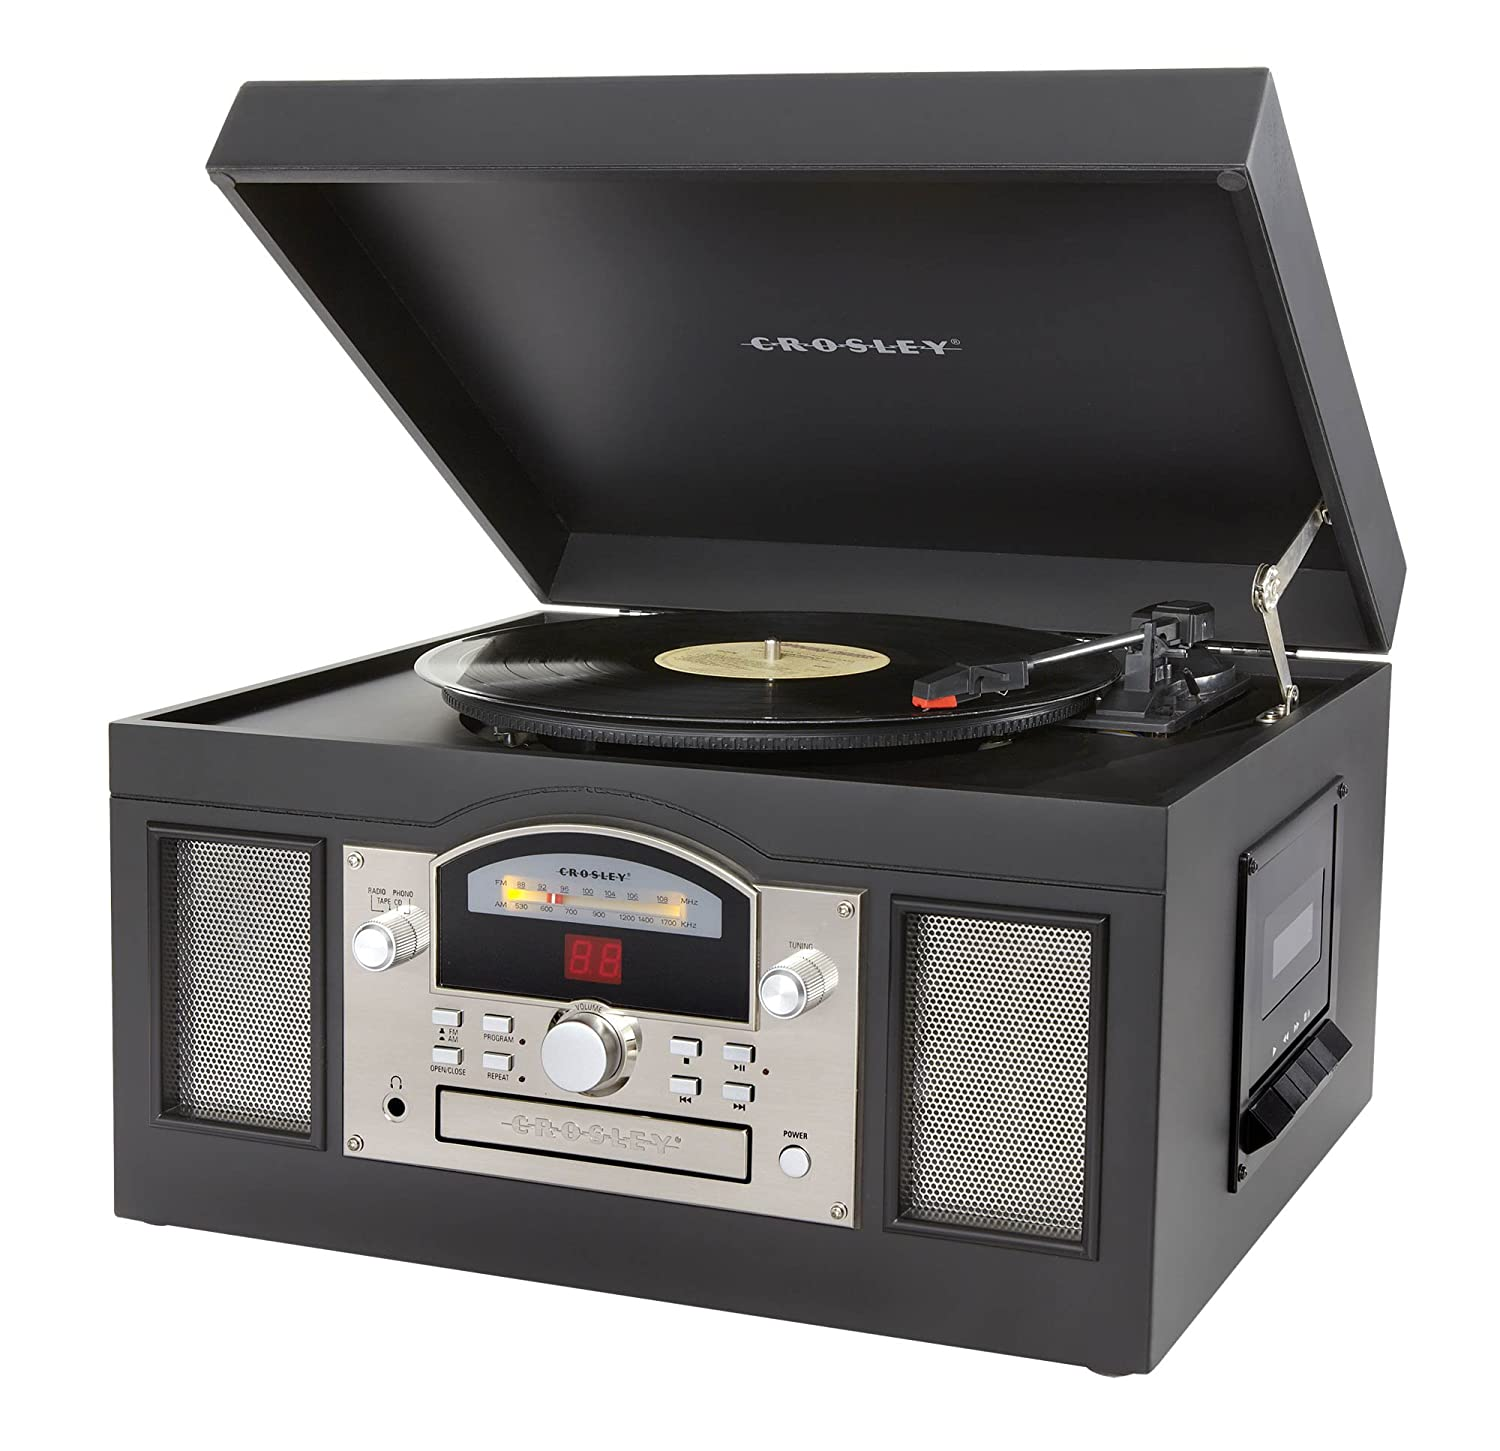 Amazon.com: Crosley CR6001A BK Archiver Turntable With Software For Ripping  U0026 Editing Audio, Black: Home Audio U0026 Theater